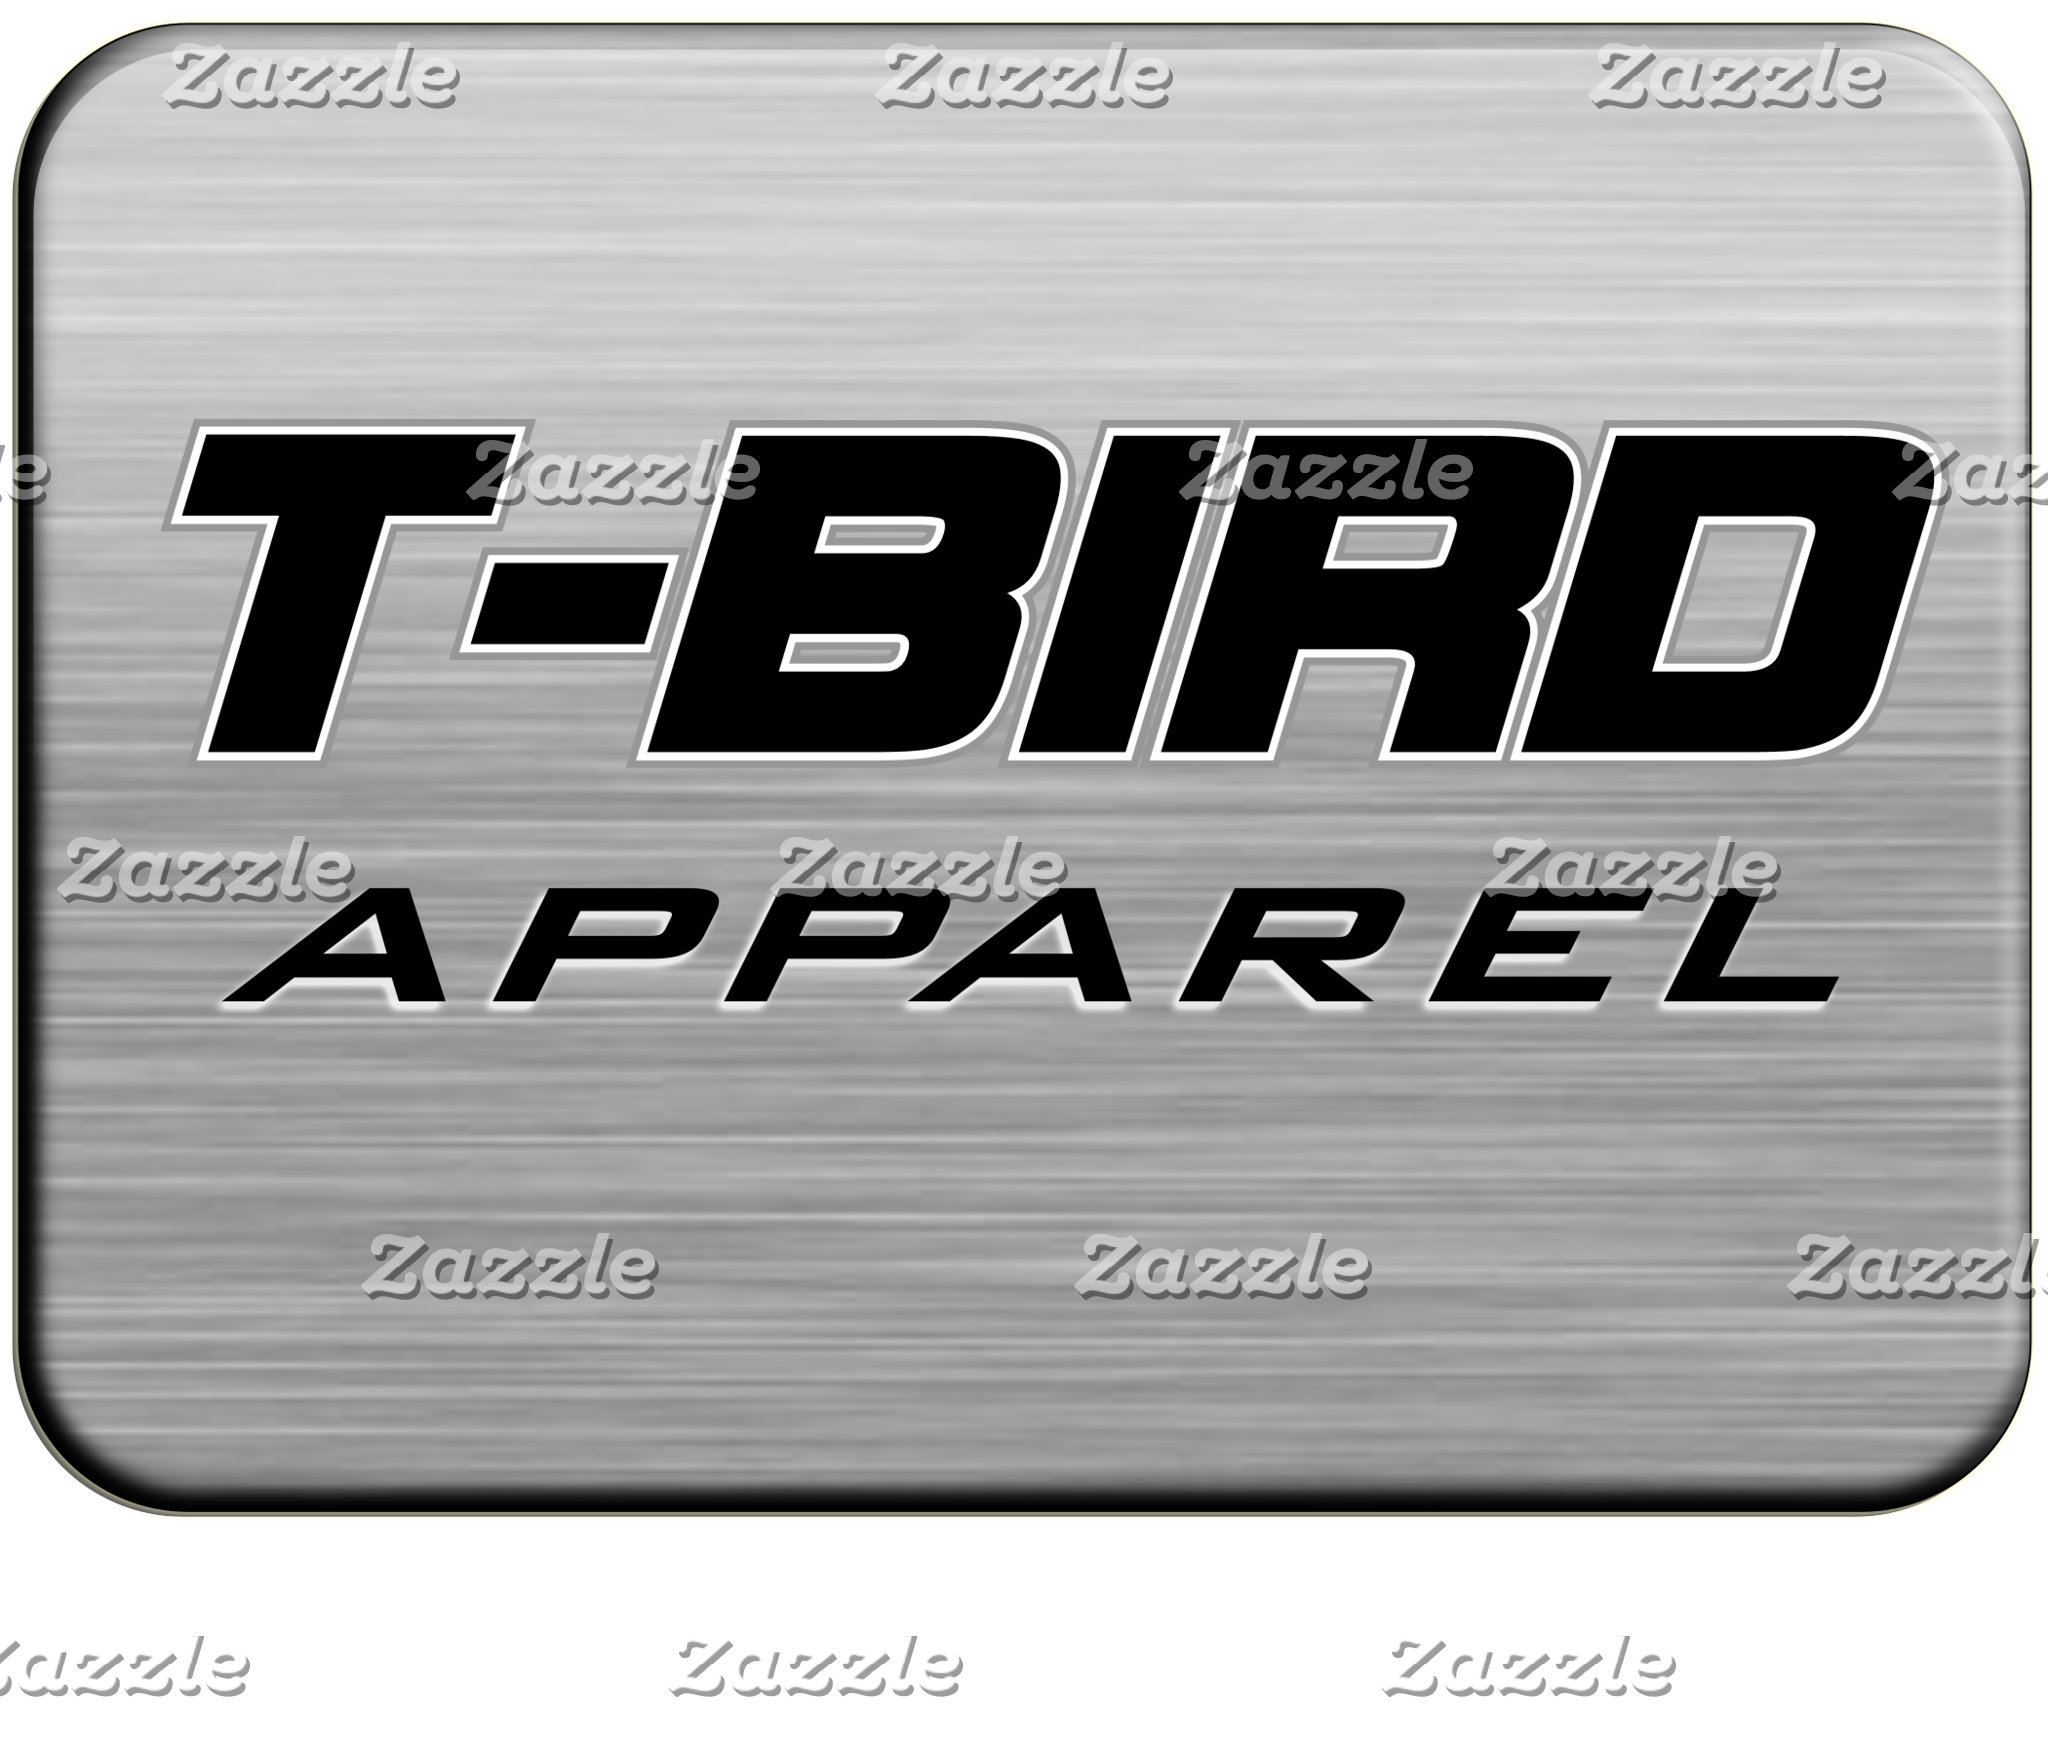 Ford Thunderbird Apparel